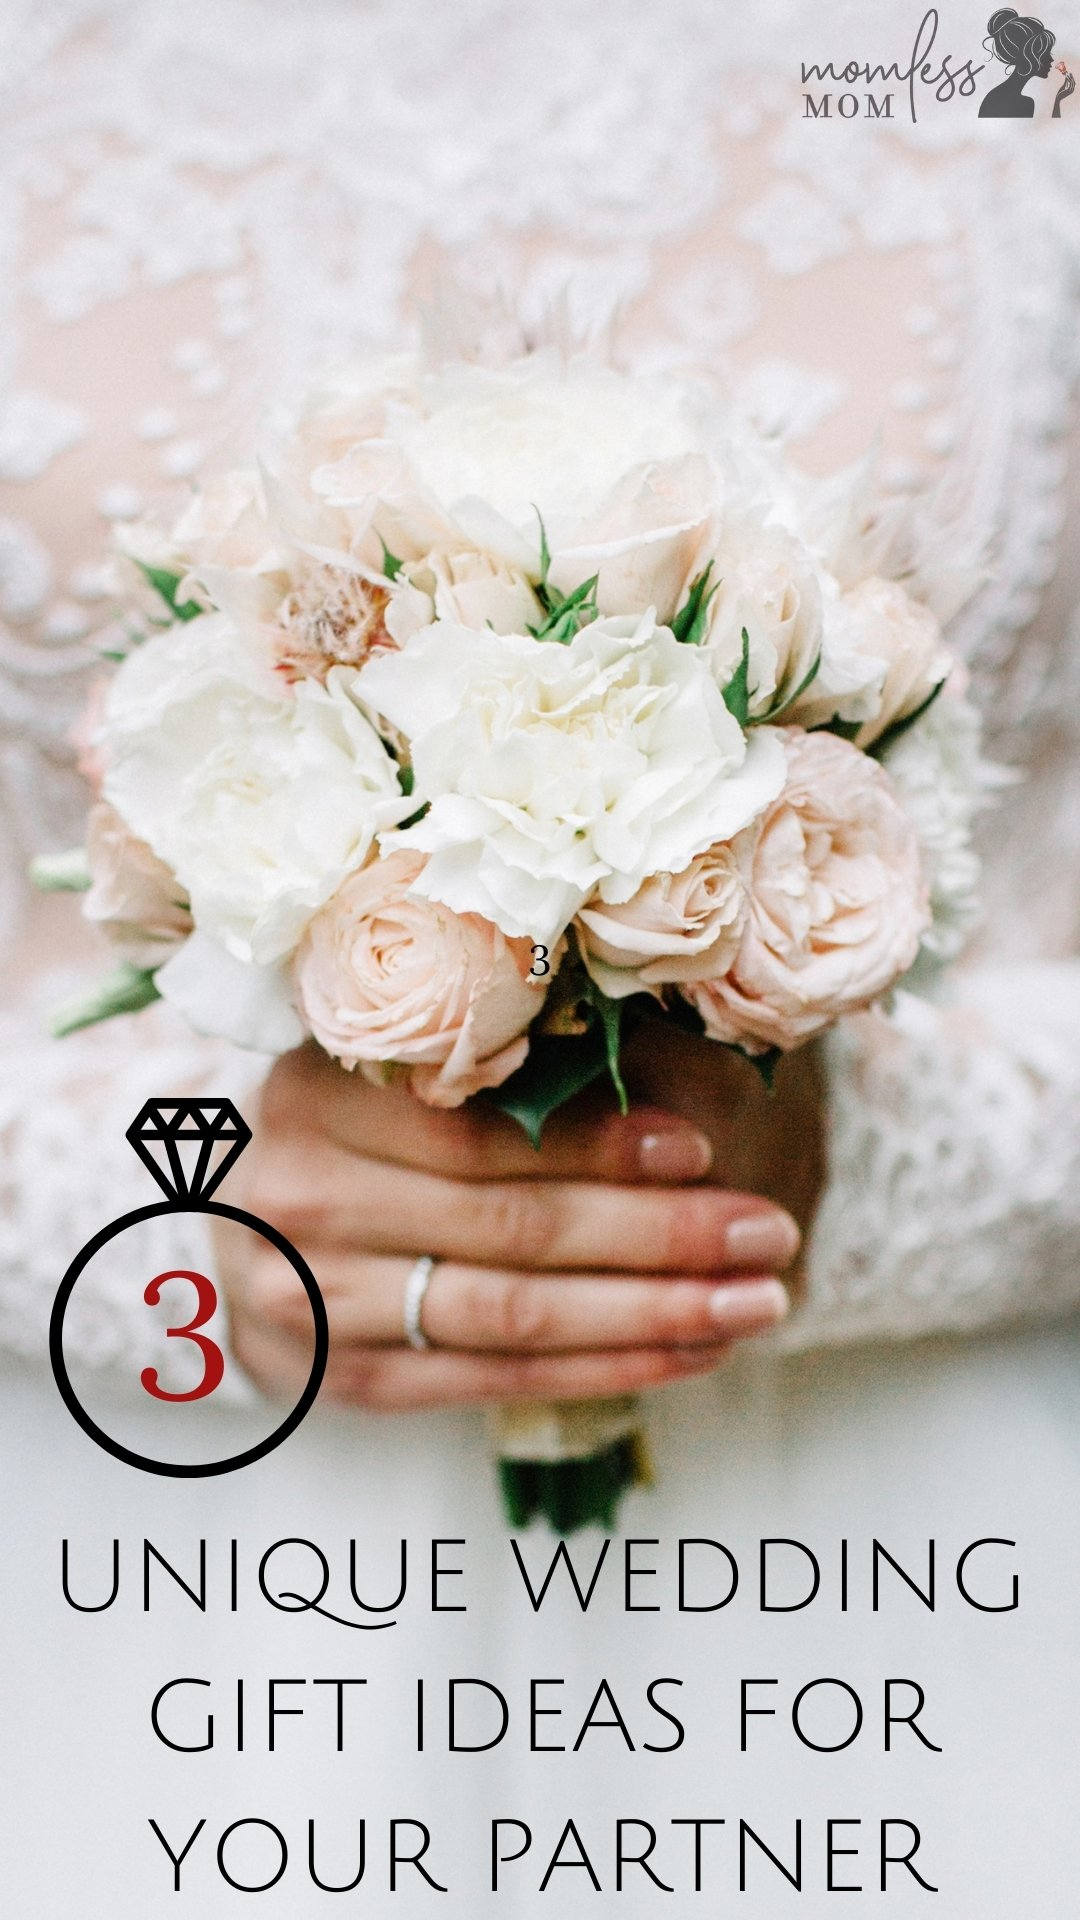 3 unique wedding gift ideas for your partner